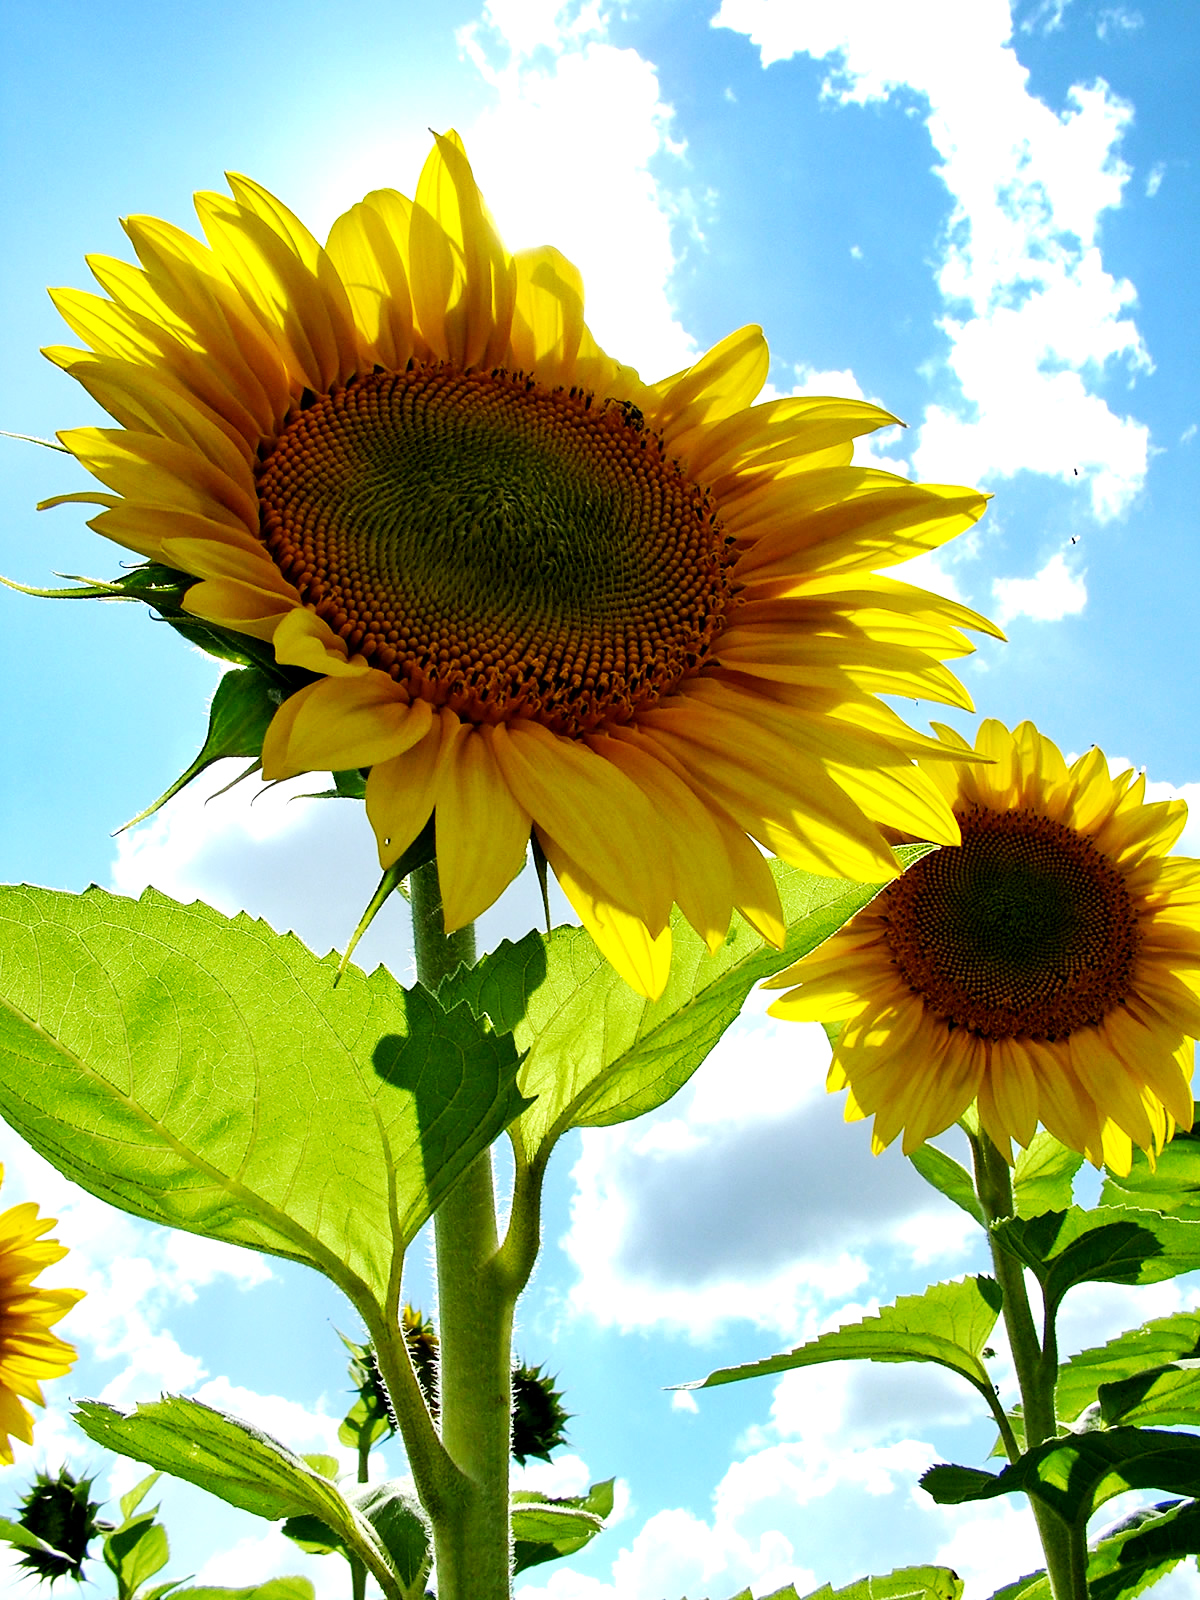 Fun ways to decorate with sunflowers